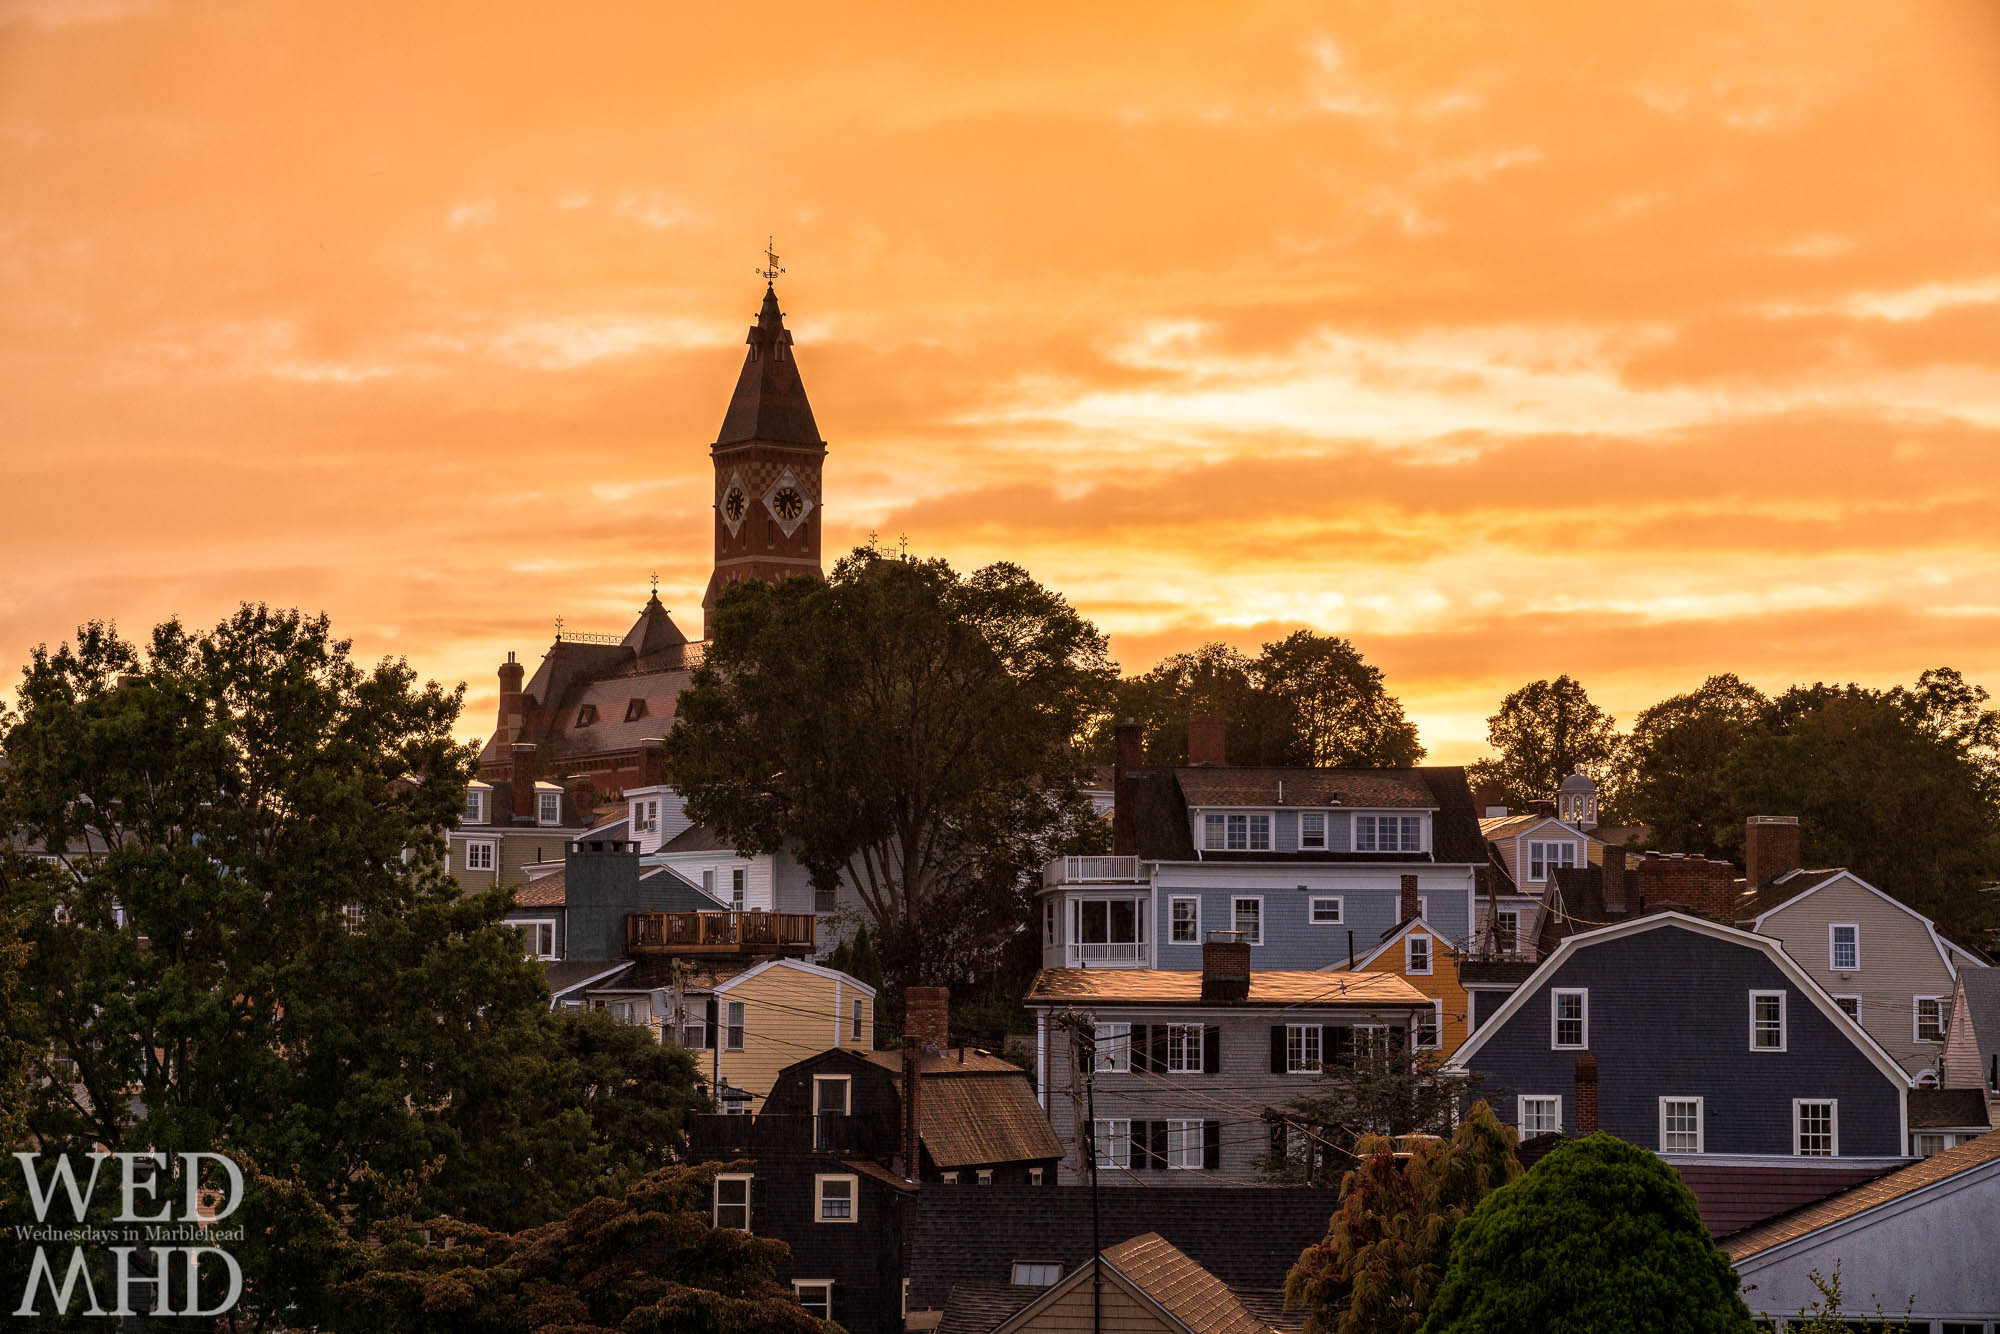 The view of Abbot Hall from Crocker Park amidst a sunset in the rain features golden light surrounding the building and its neighboring homes